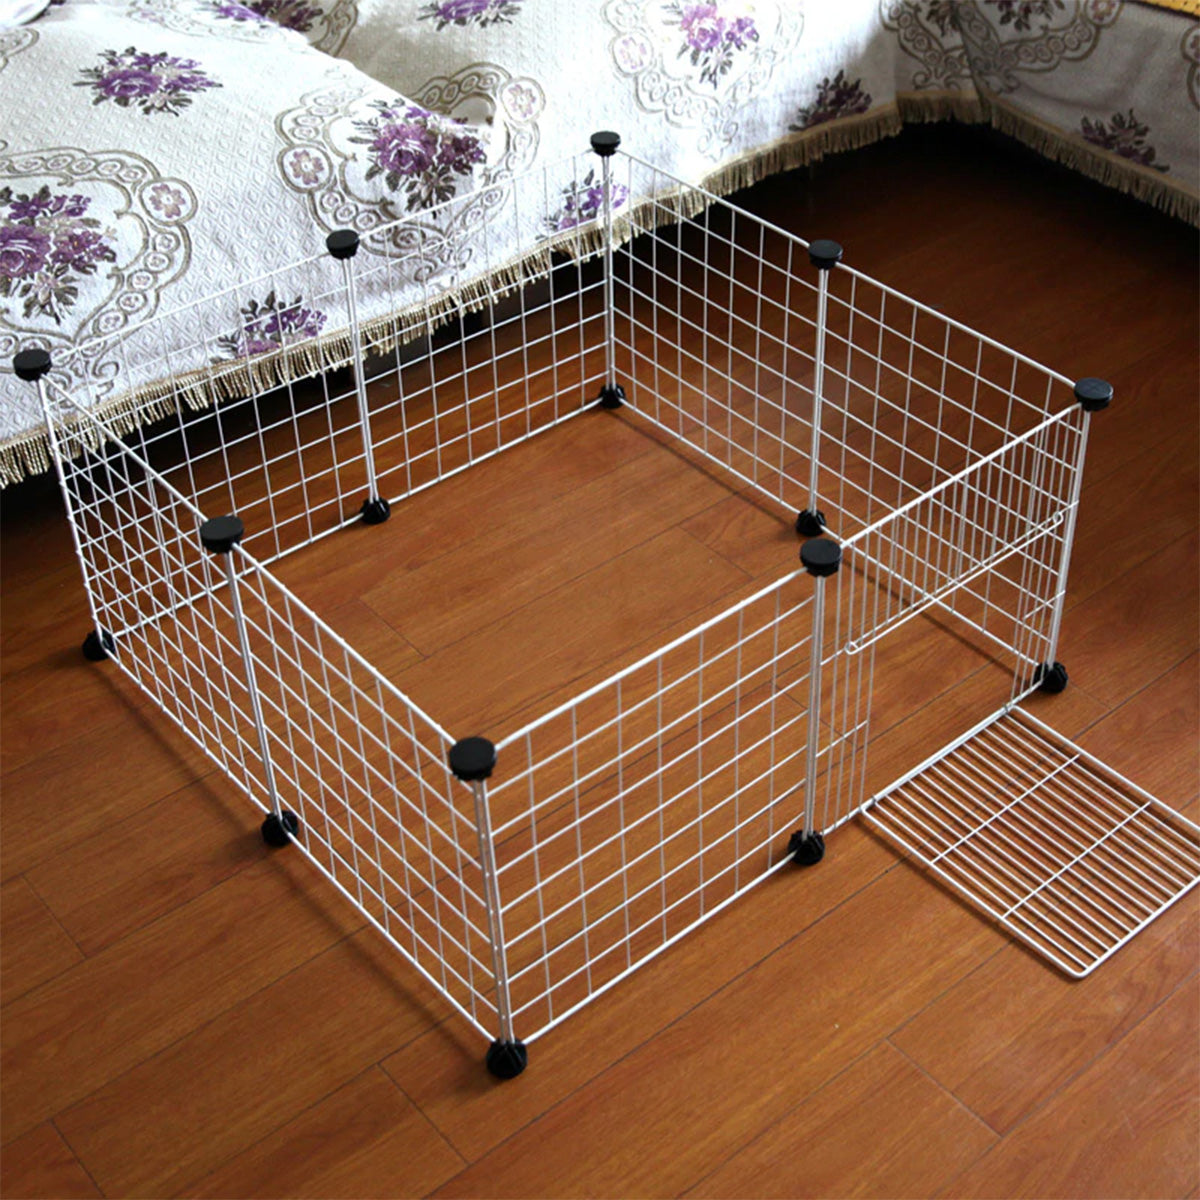 Folding Dog Cage With IRON Fence